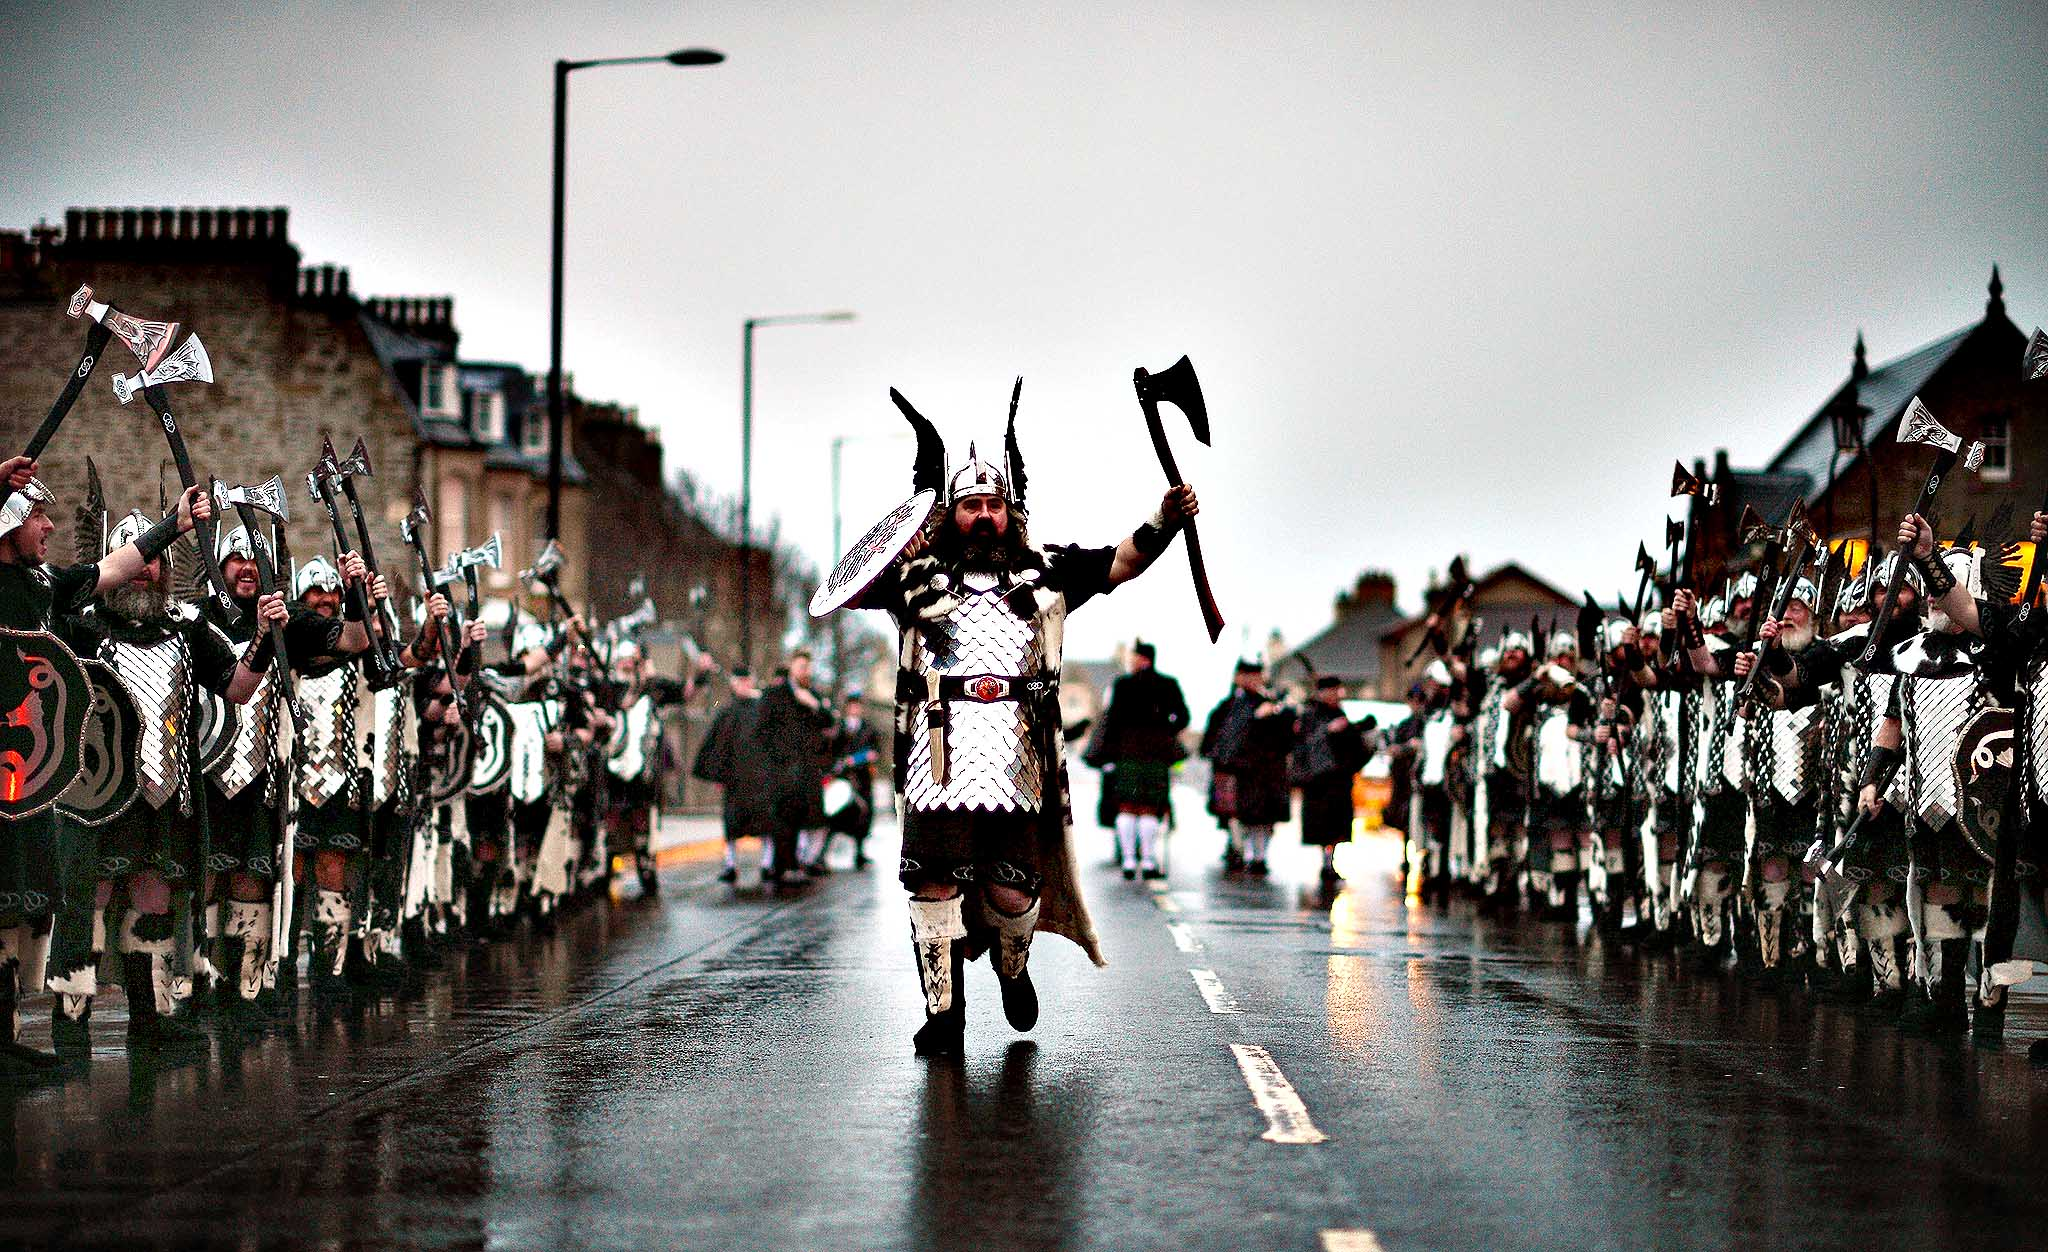 Locals dressed as Vikings  march through the streets of Lerwick on January 28, 2014, in the Shetland Islands, Scotland. The traditional festival of fire is known as 'Up Helly Aa'. The spectacular event takes place annually on the last Tuesday of January. The climax of the day comes with participants in full costume hauling a Viking longboat through the streets of Lerwick to the edge of town where up to 1000 people parade and throw their flaming torches into the galley.